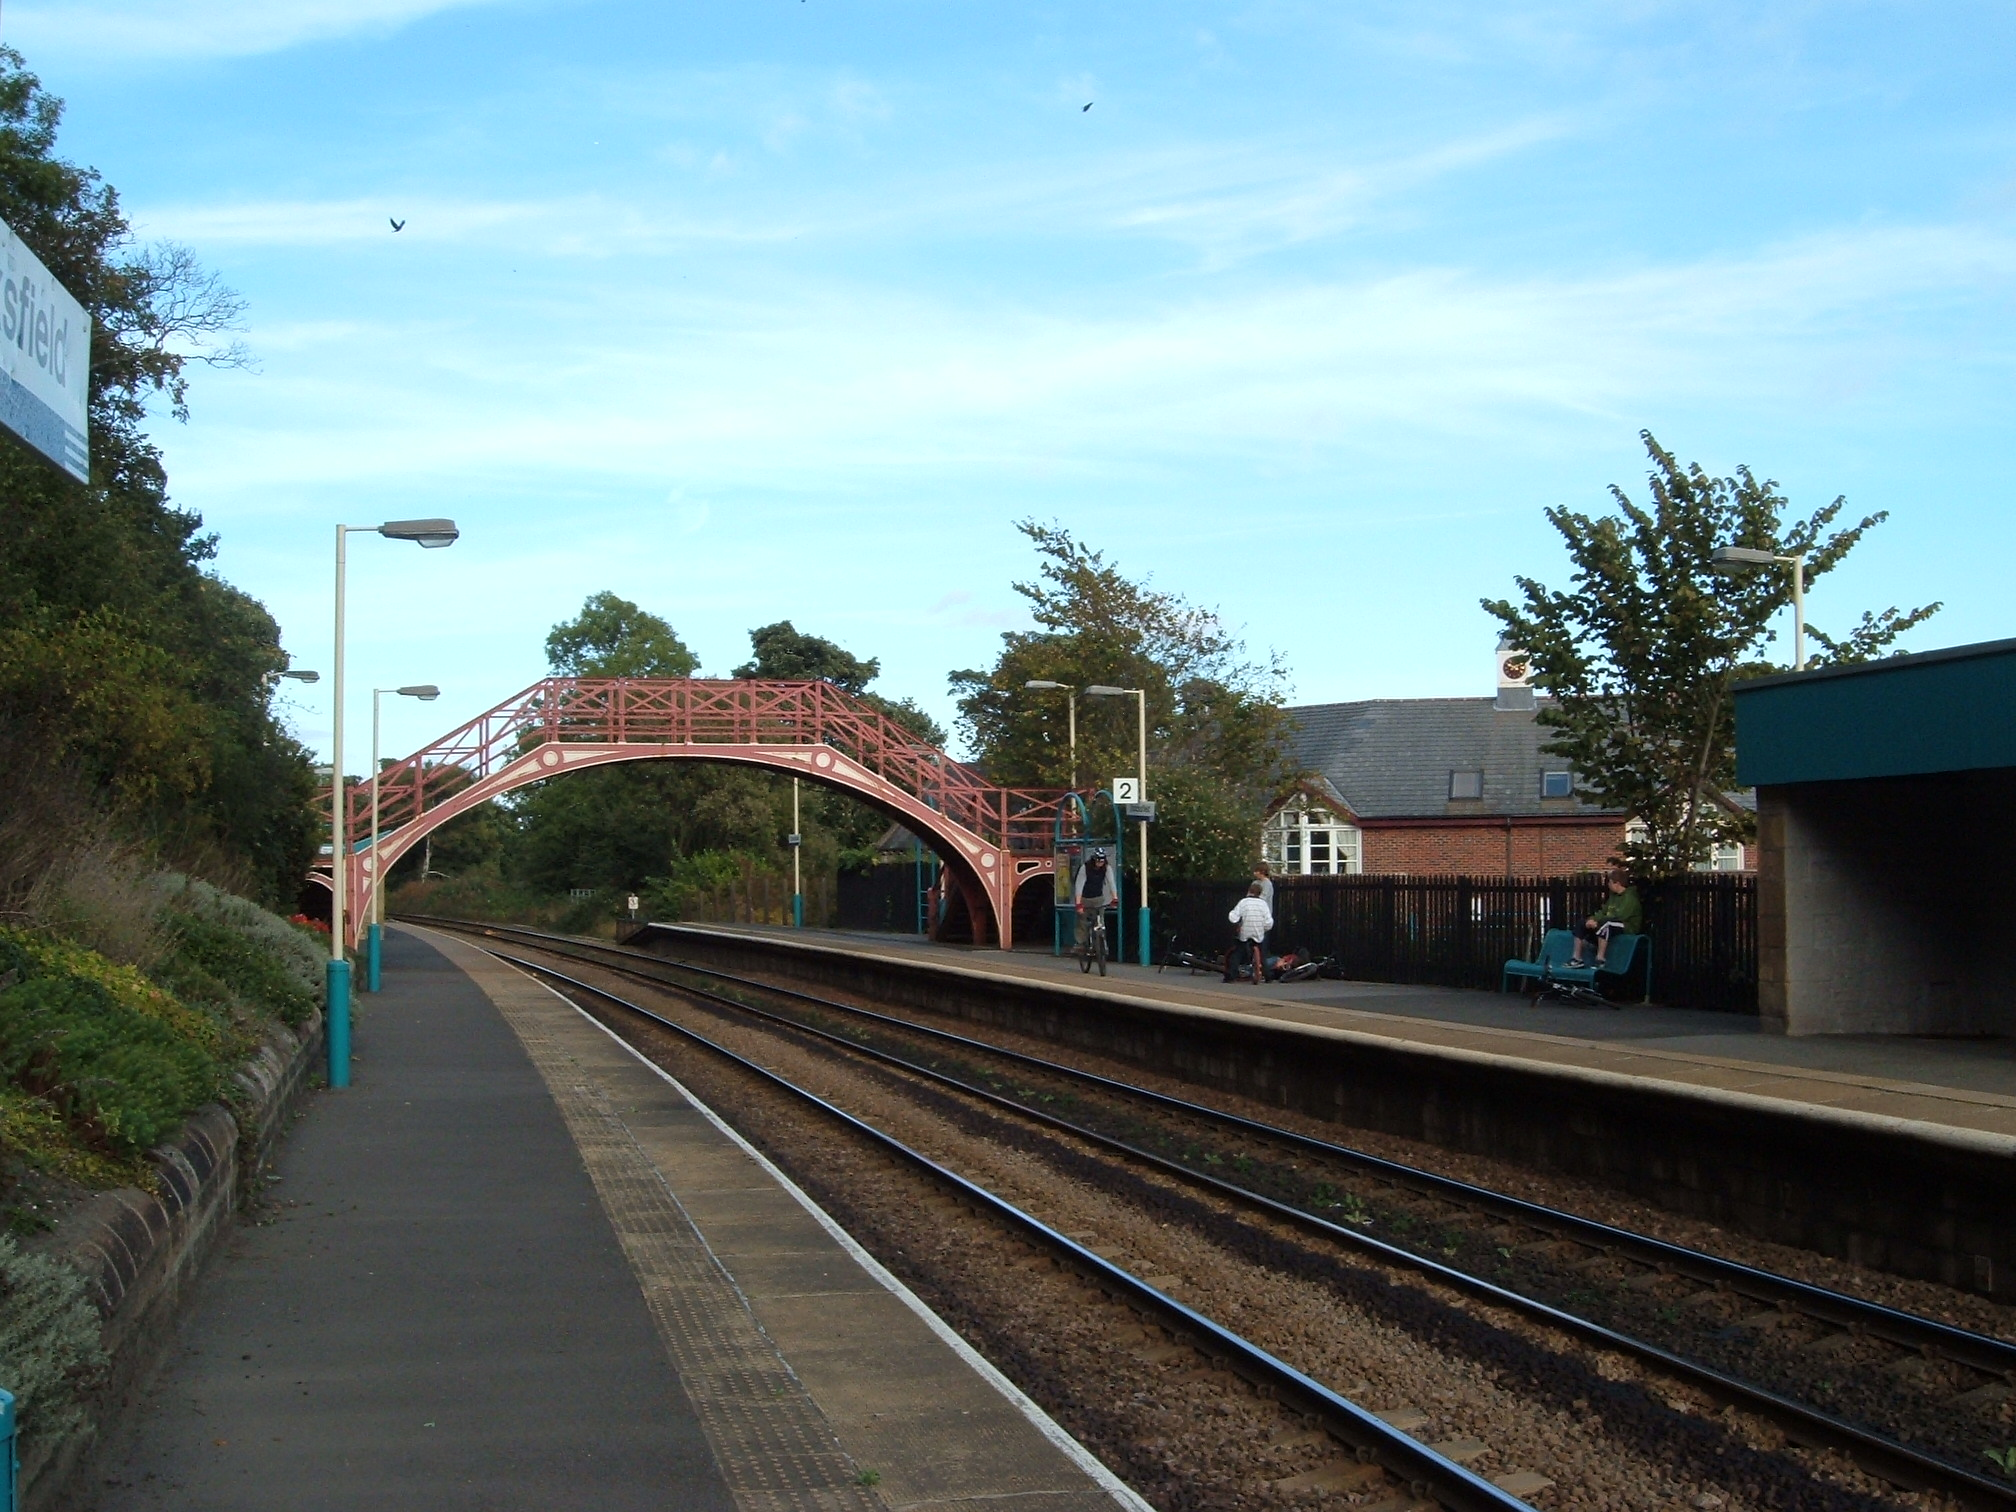 Stocksfield Railway Station